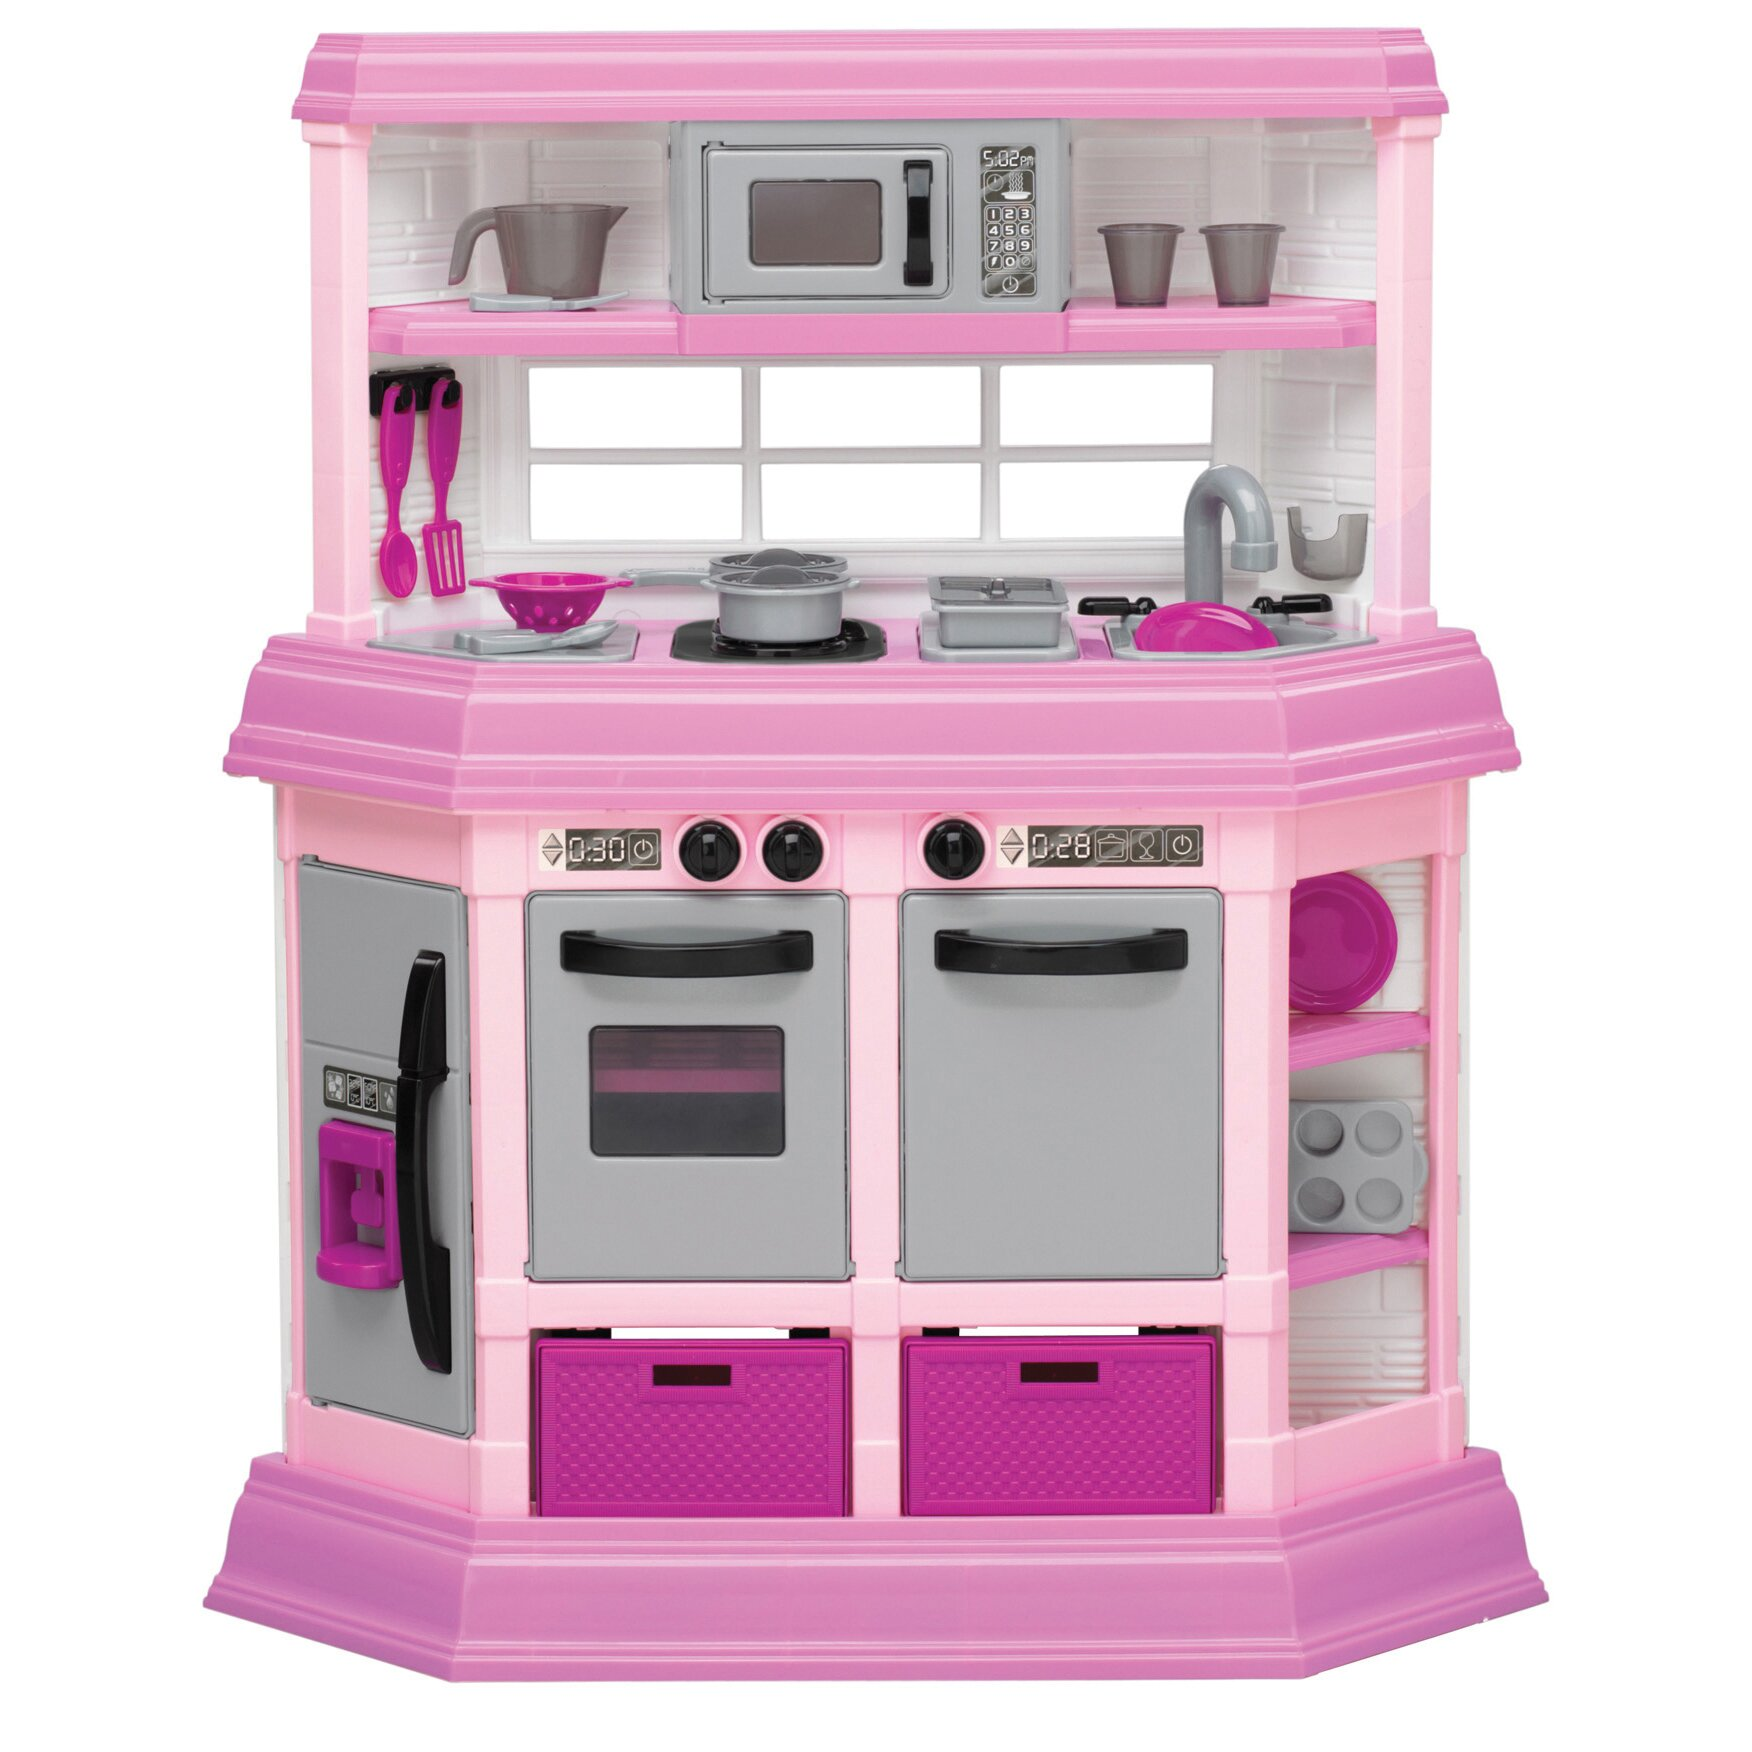 Play Kitchen American Plastic Toys 22 Piece Cook And Play Kitchen Set Reviews